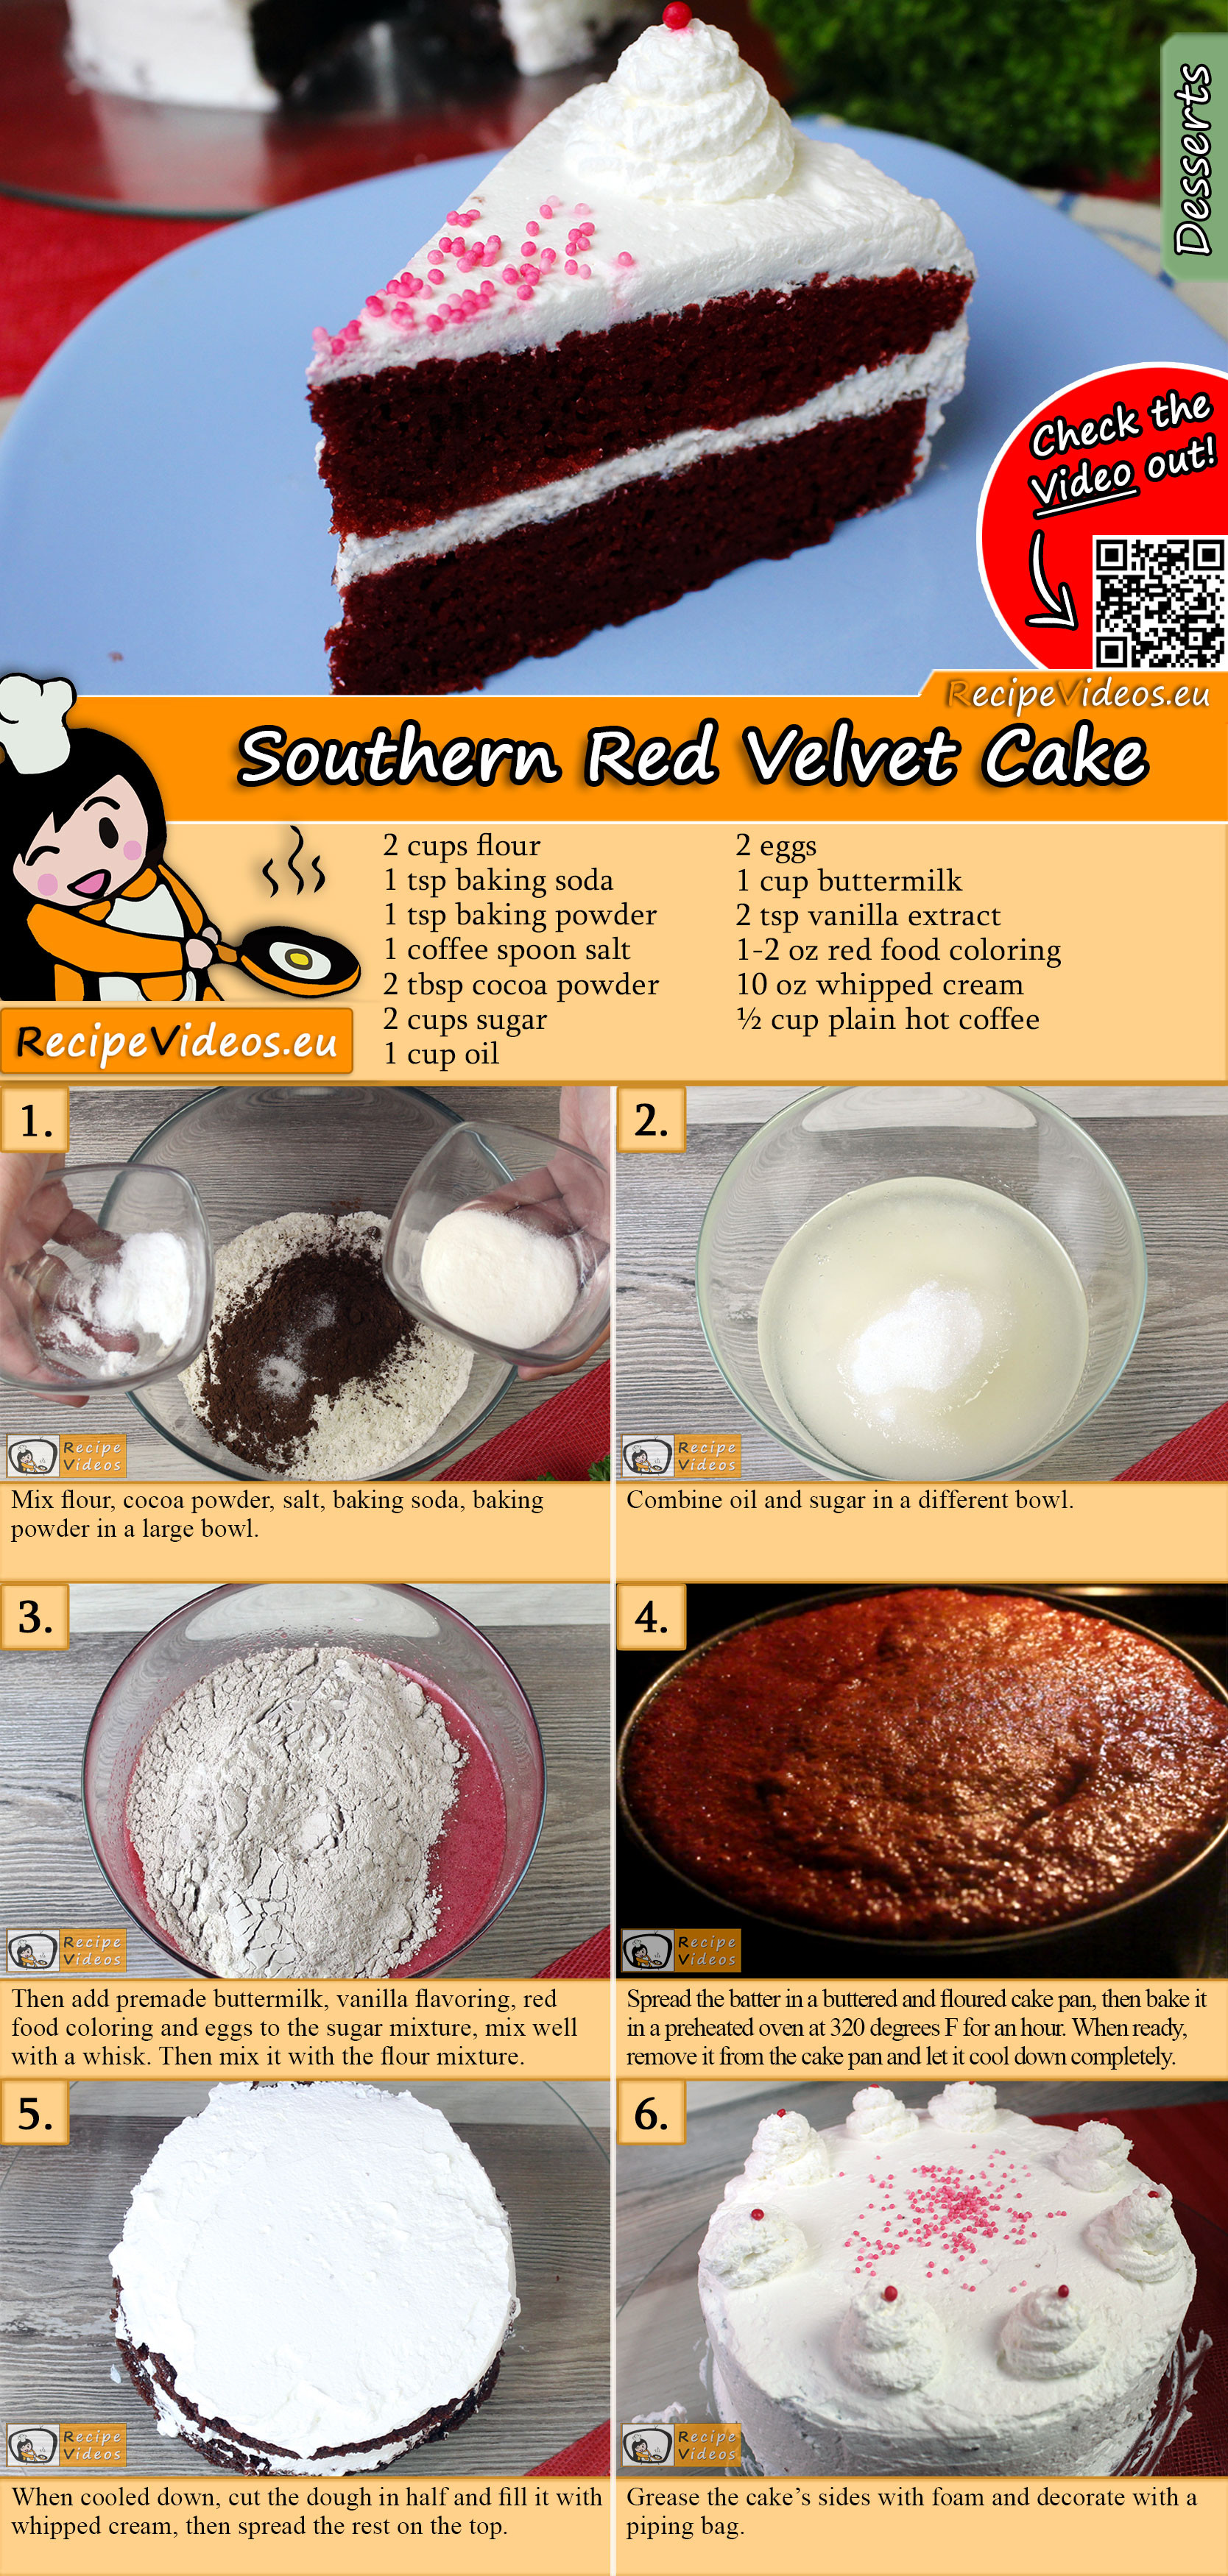 Southern Red Velvet Cake recipe with video